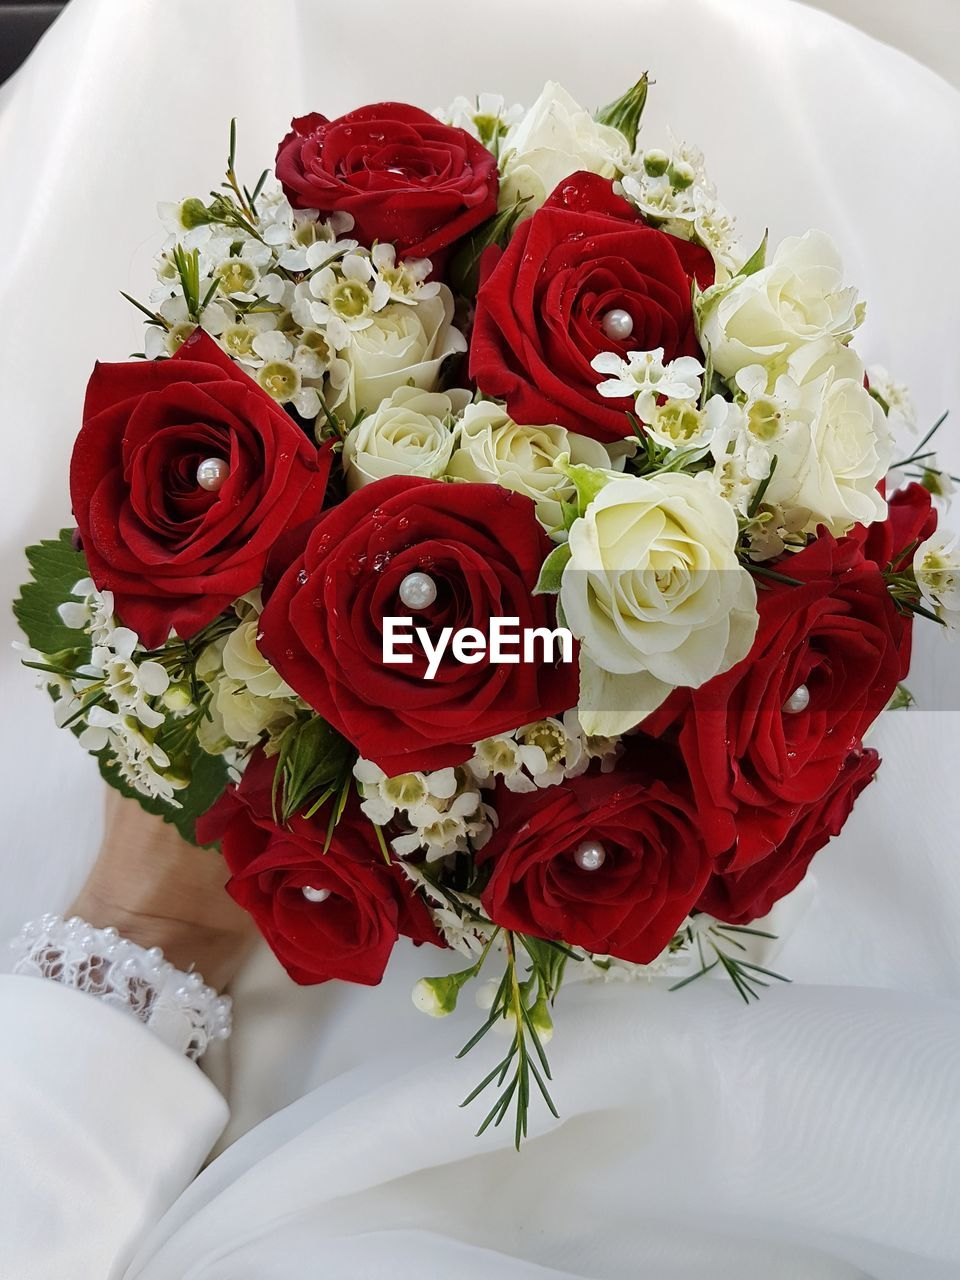 rose, rose - flower, flower arrangement, flower, plant, bouquet, flowering plant, freshness, flower head, beauty in nature, petal, vulnerability, indoors, fragility, red, close-up, high angle view, inflorescence, arrangement, nature, no people, bunch of flowers